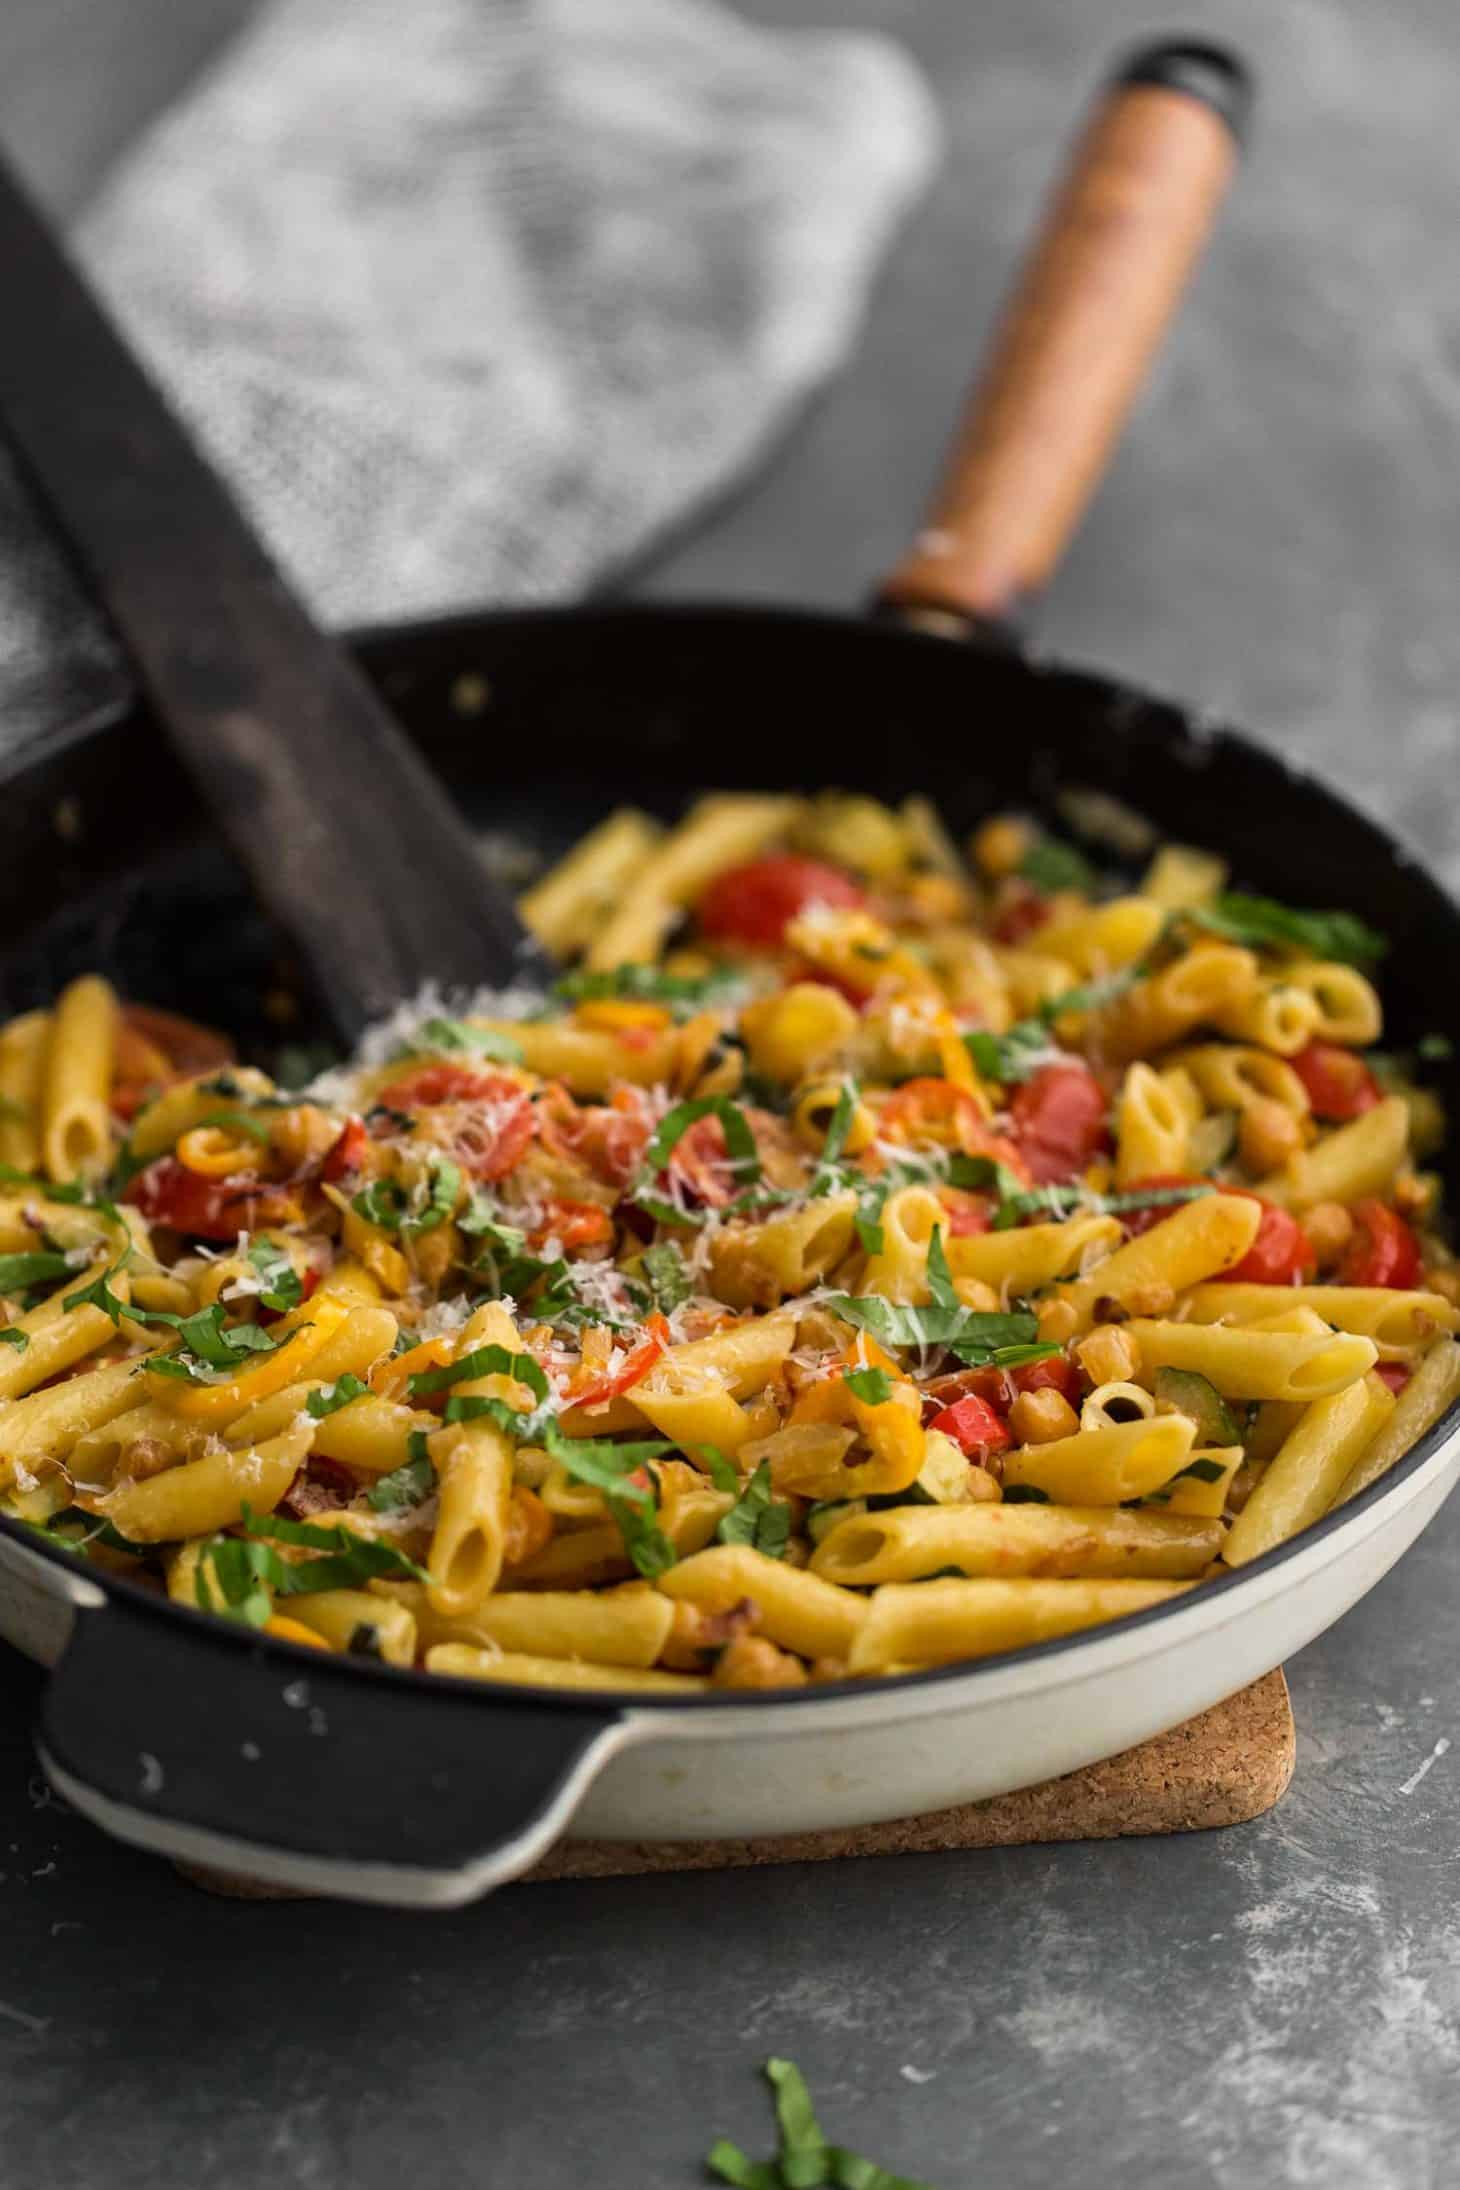 Vegetarian Recipes For Summer  Patrick Ireland Reviews Fact based news on the Net